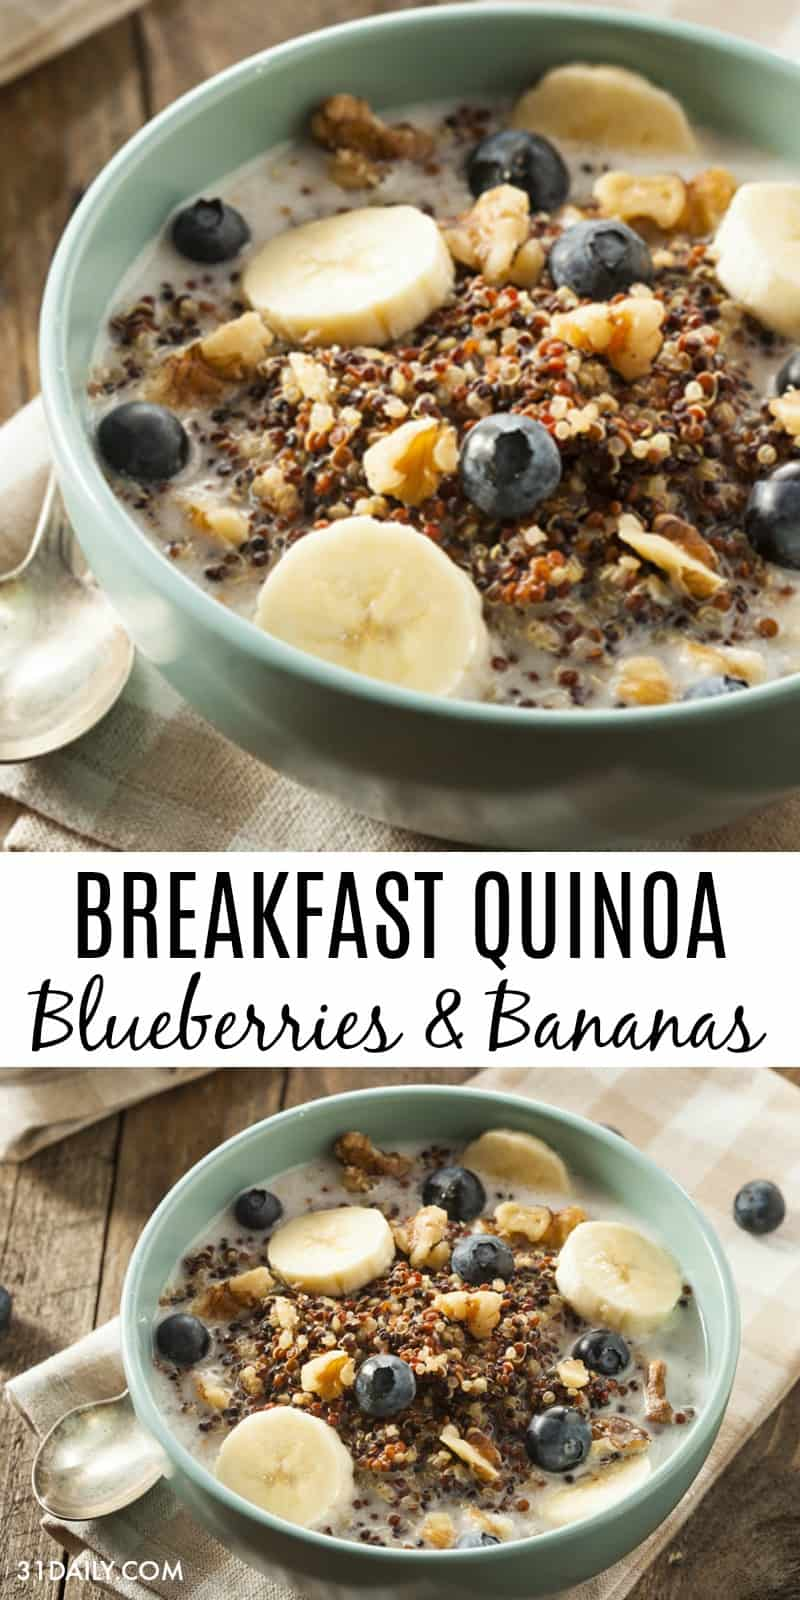 Healthy Breakfast Quinoa with Blueberries and Bananas | 31Daily.com